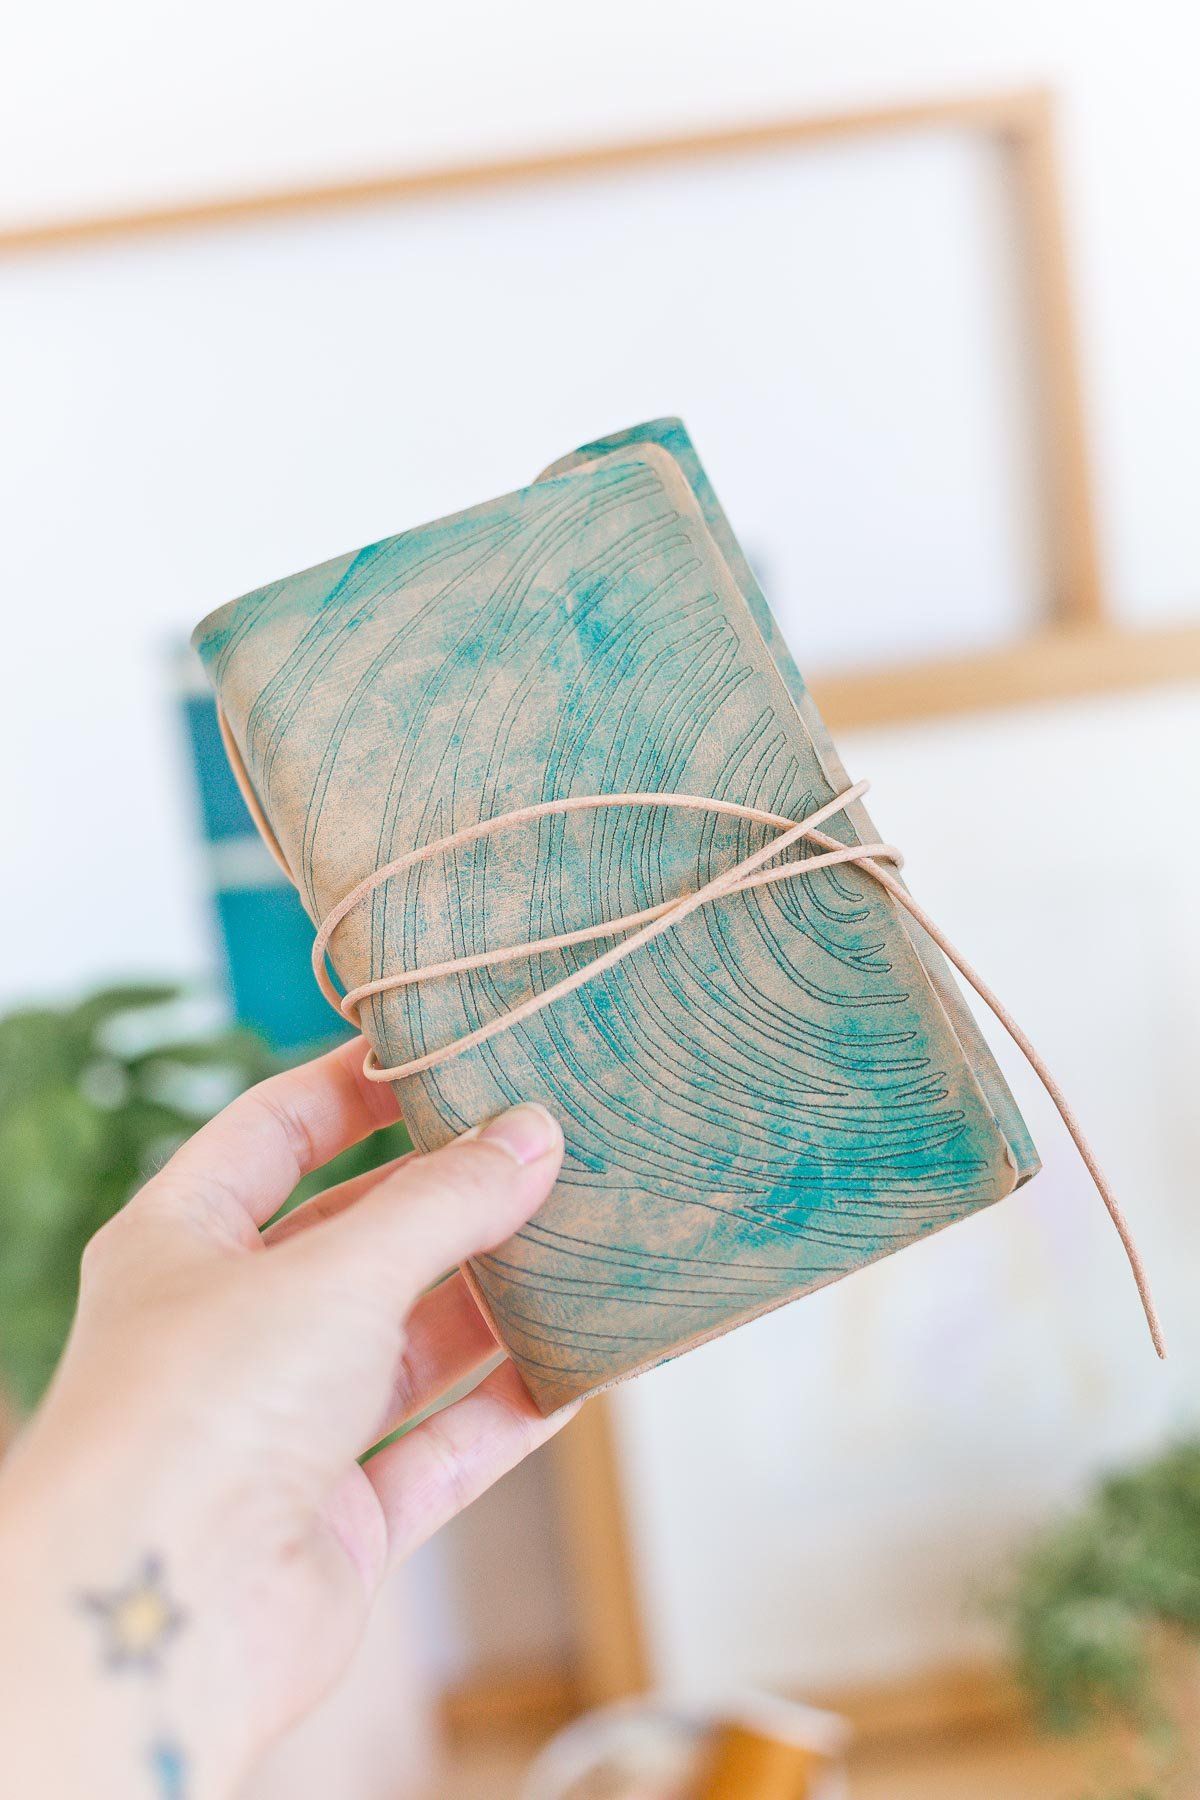 Make an embossed (and dyed) leather notebook like this with just a few supplies. You can even create your own pattern. #diy #leatherdiy #notebook #backtoschool #diynotebook #leather